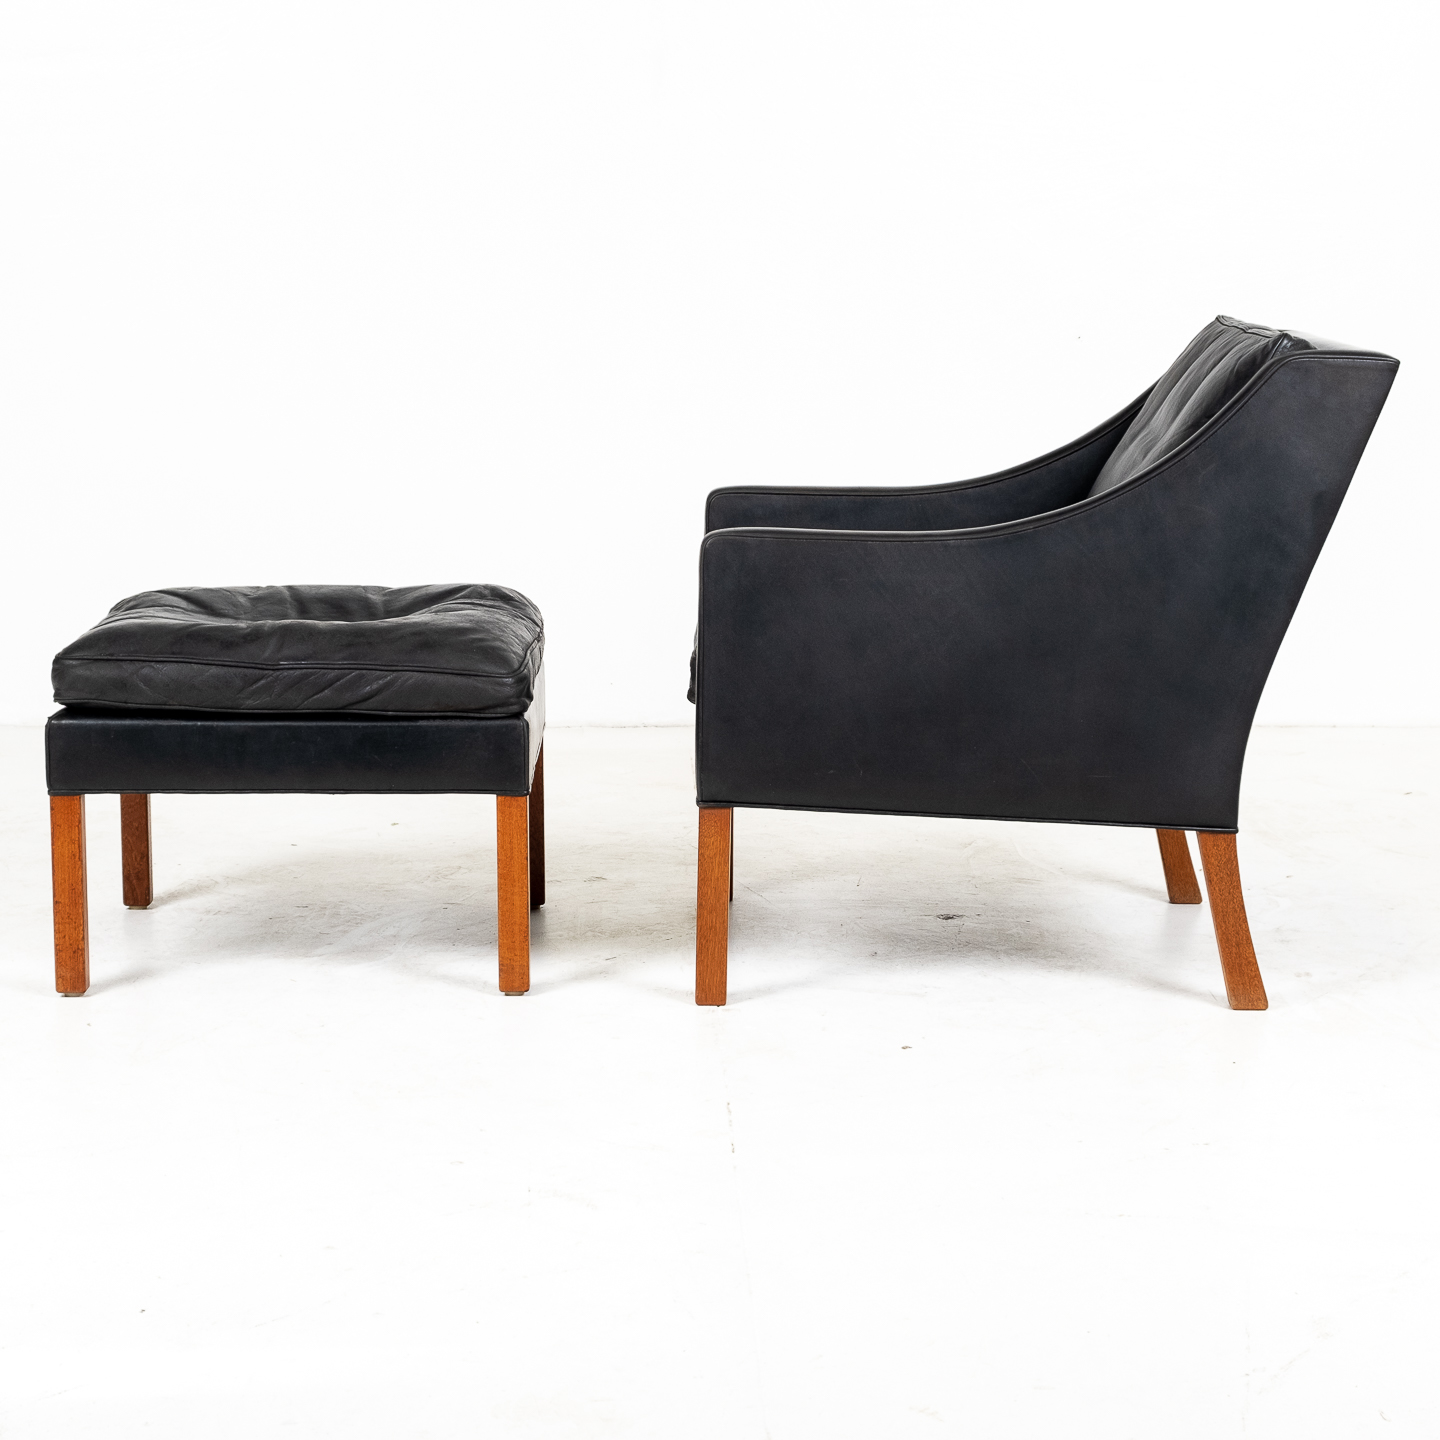 Model 2207 Armchair With Footstool Designed By Borge Mogensen For Fredericia Mobelfabrik In Black Leather, 1960s, Denmark 0000011